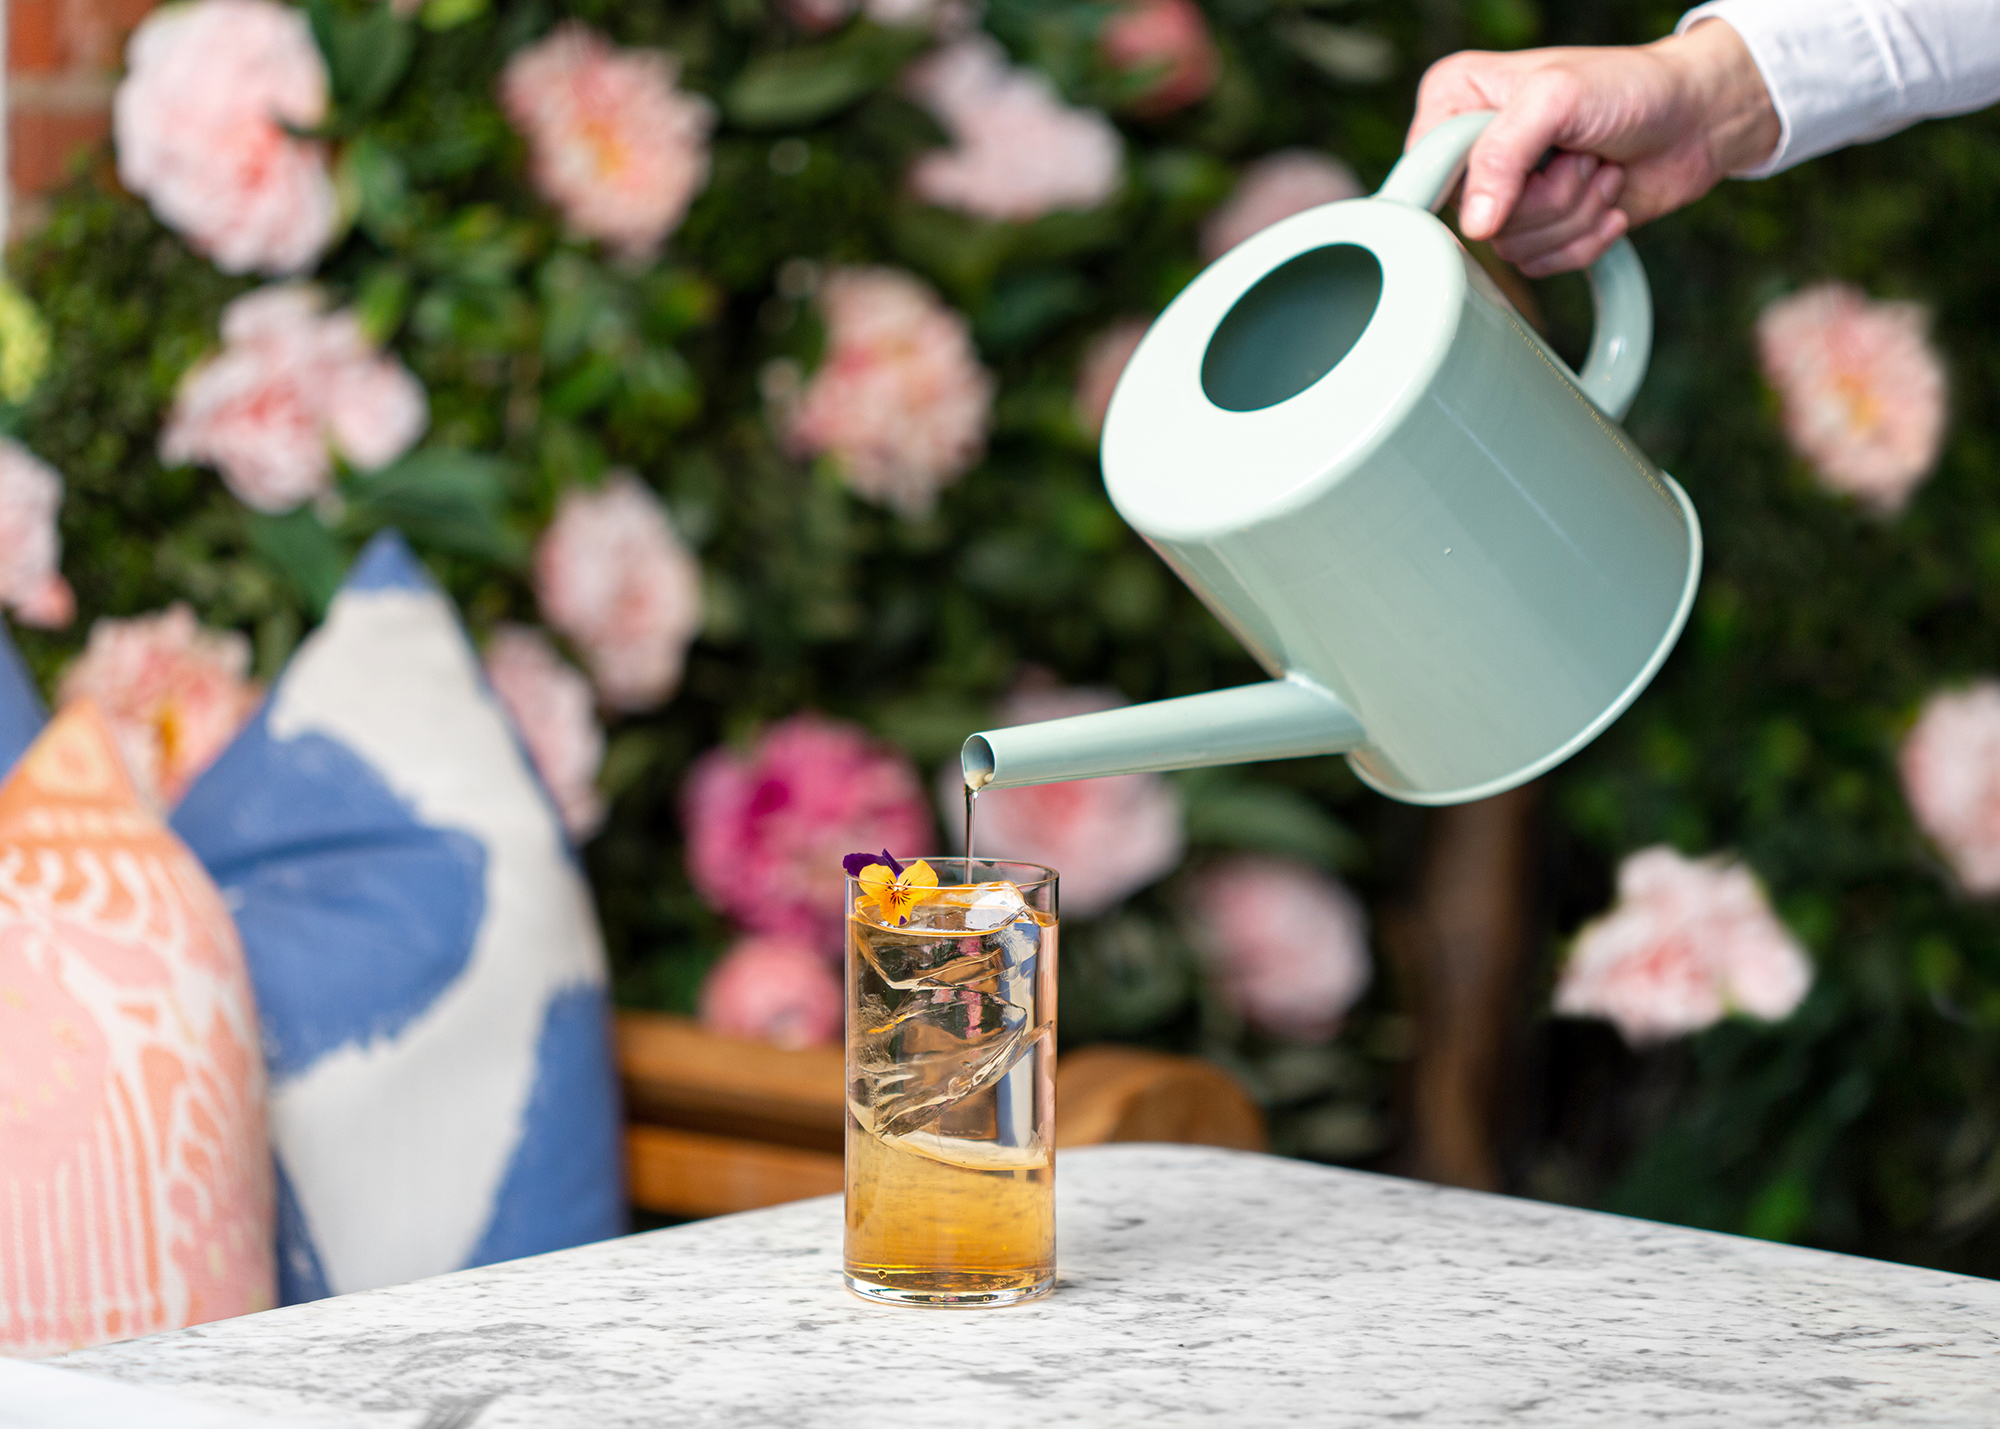 Try the New Saicho Cocktail at the Dalloway Terrace